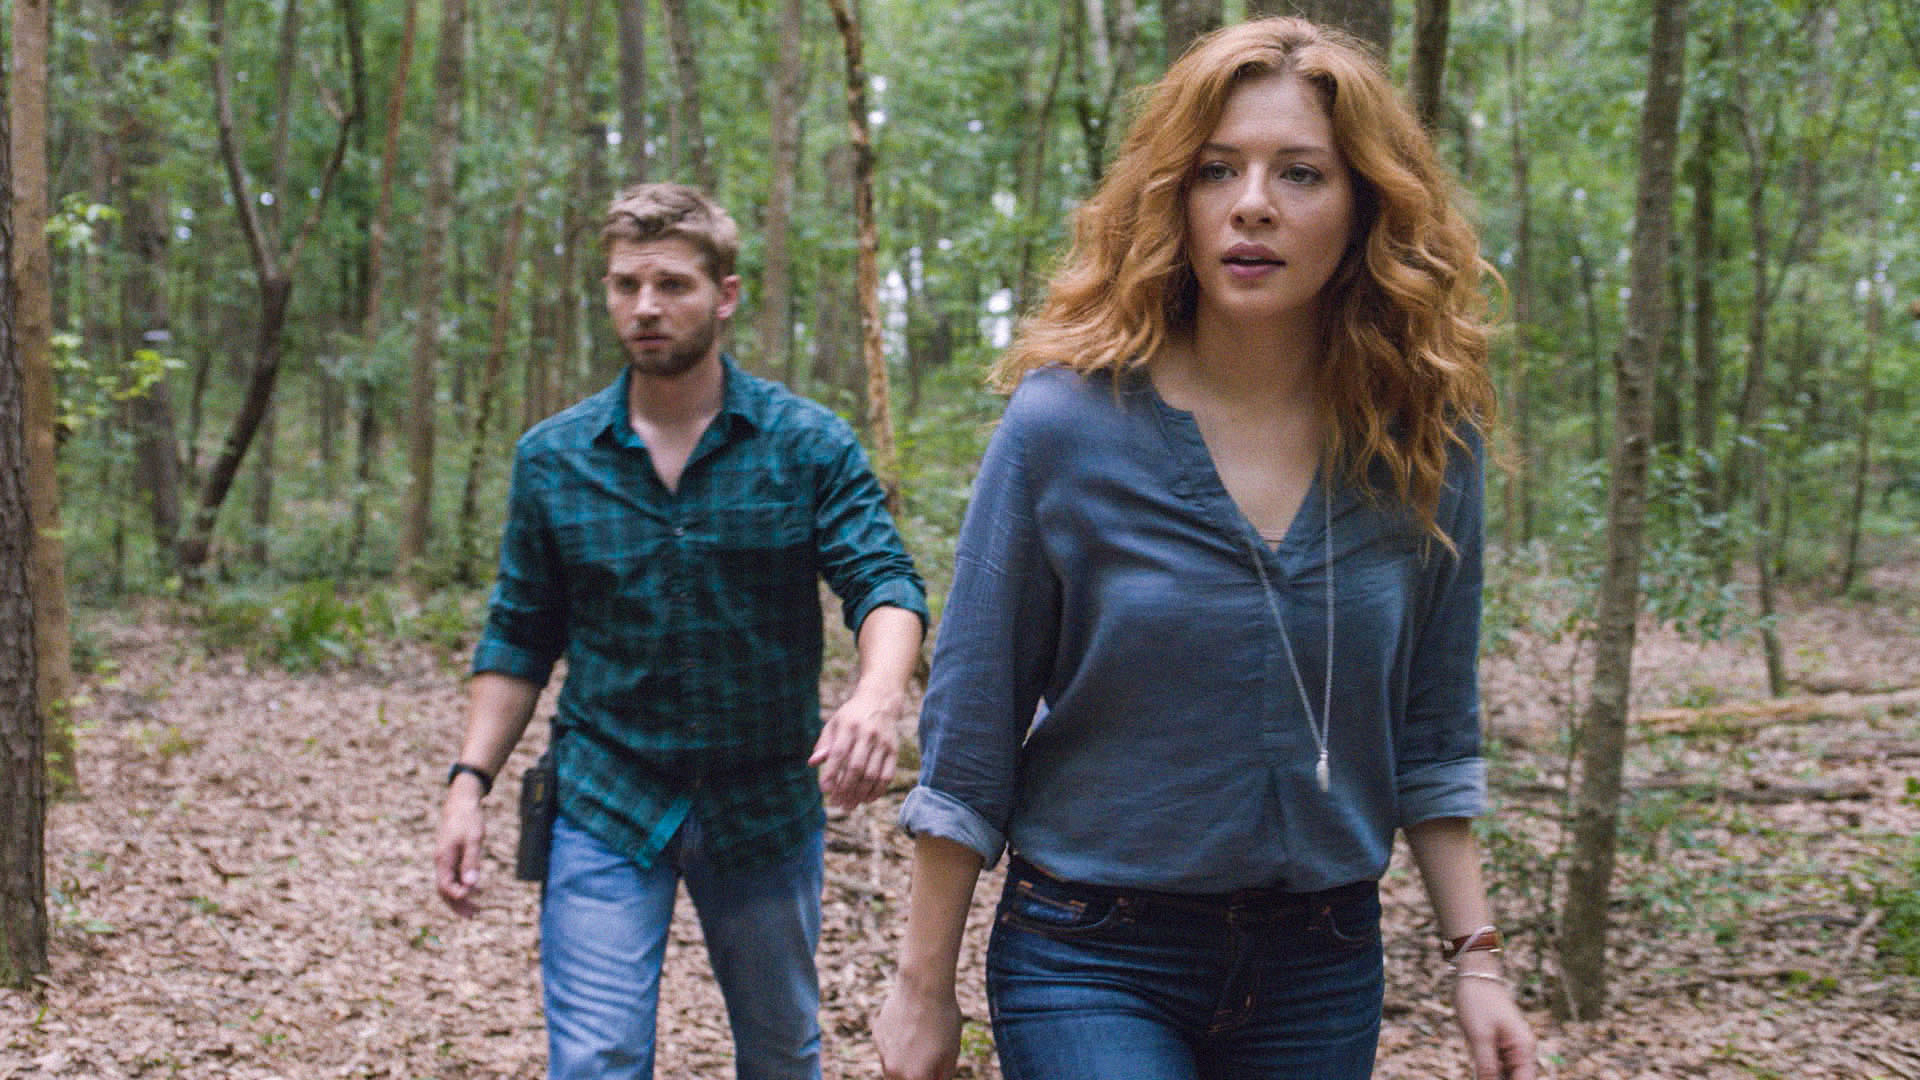 12. When they wandered in the woods together